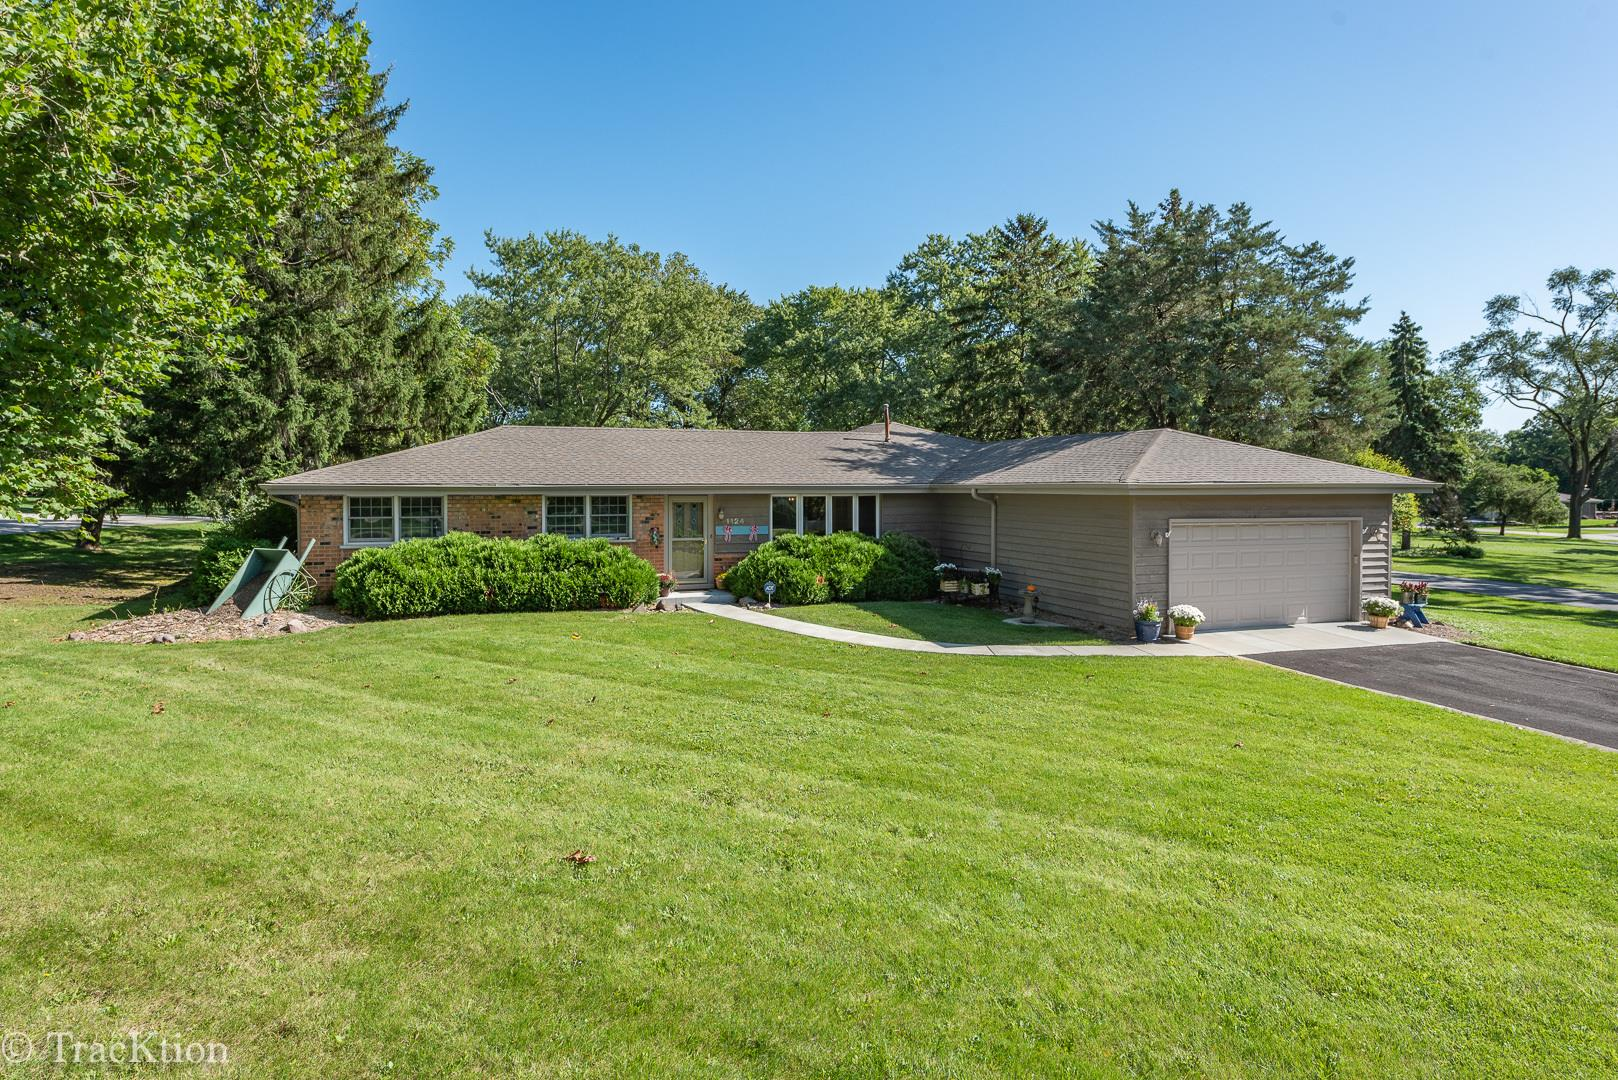 1124 86th Street, Downers Grove, IL 60516 - #: 10825649